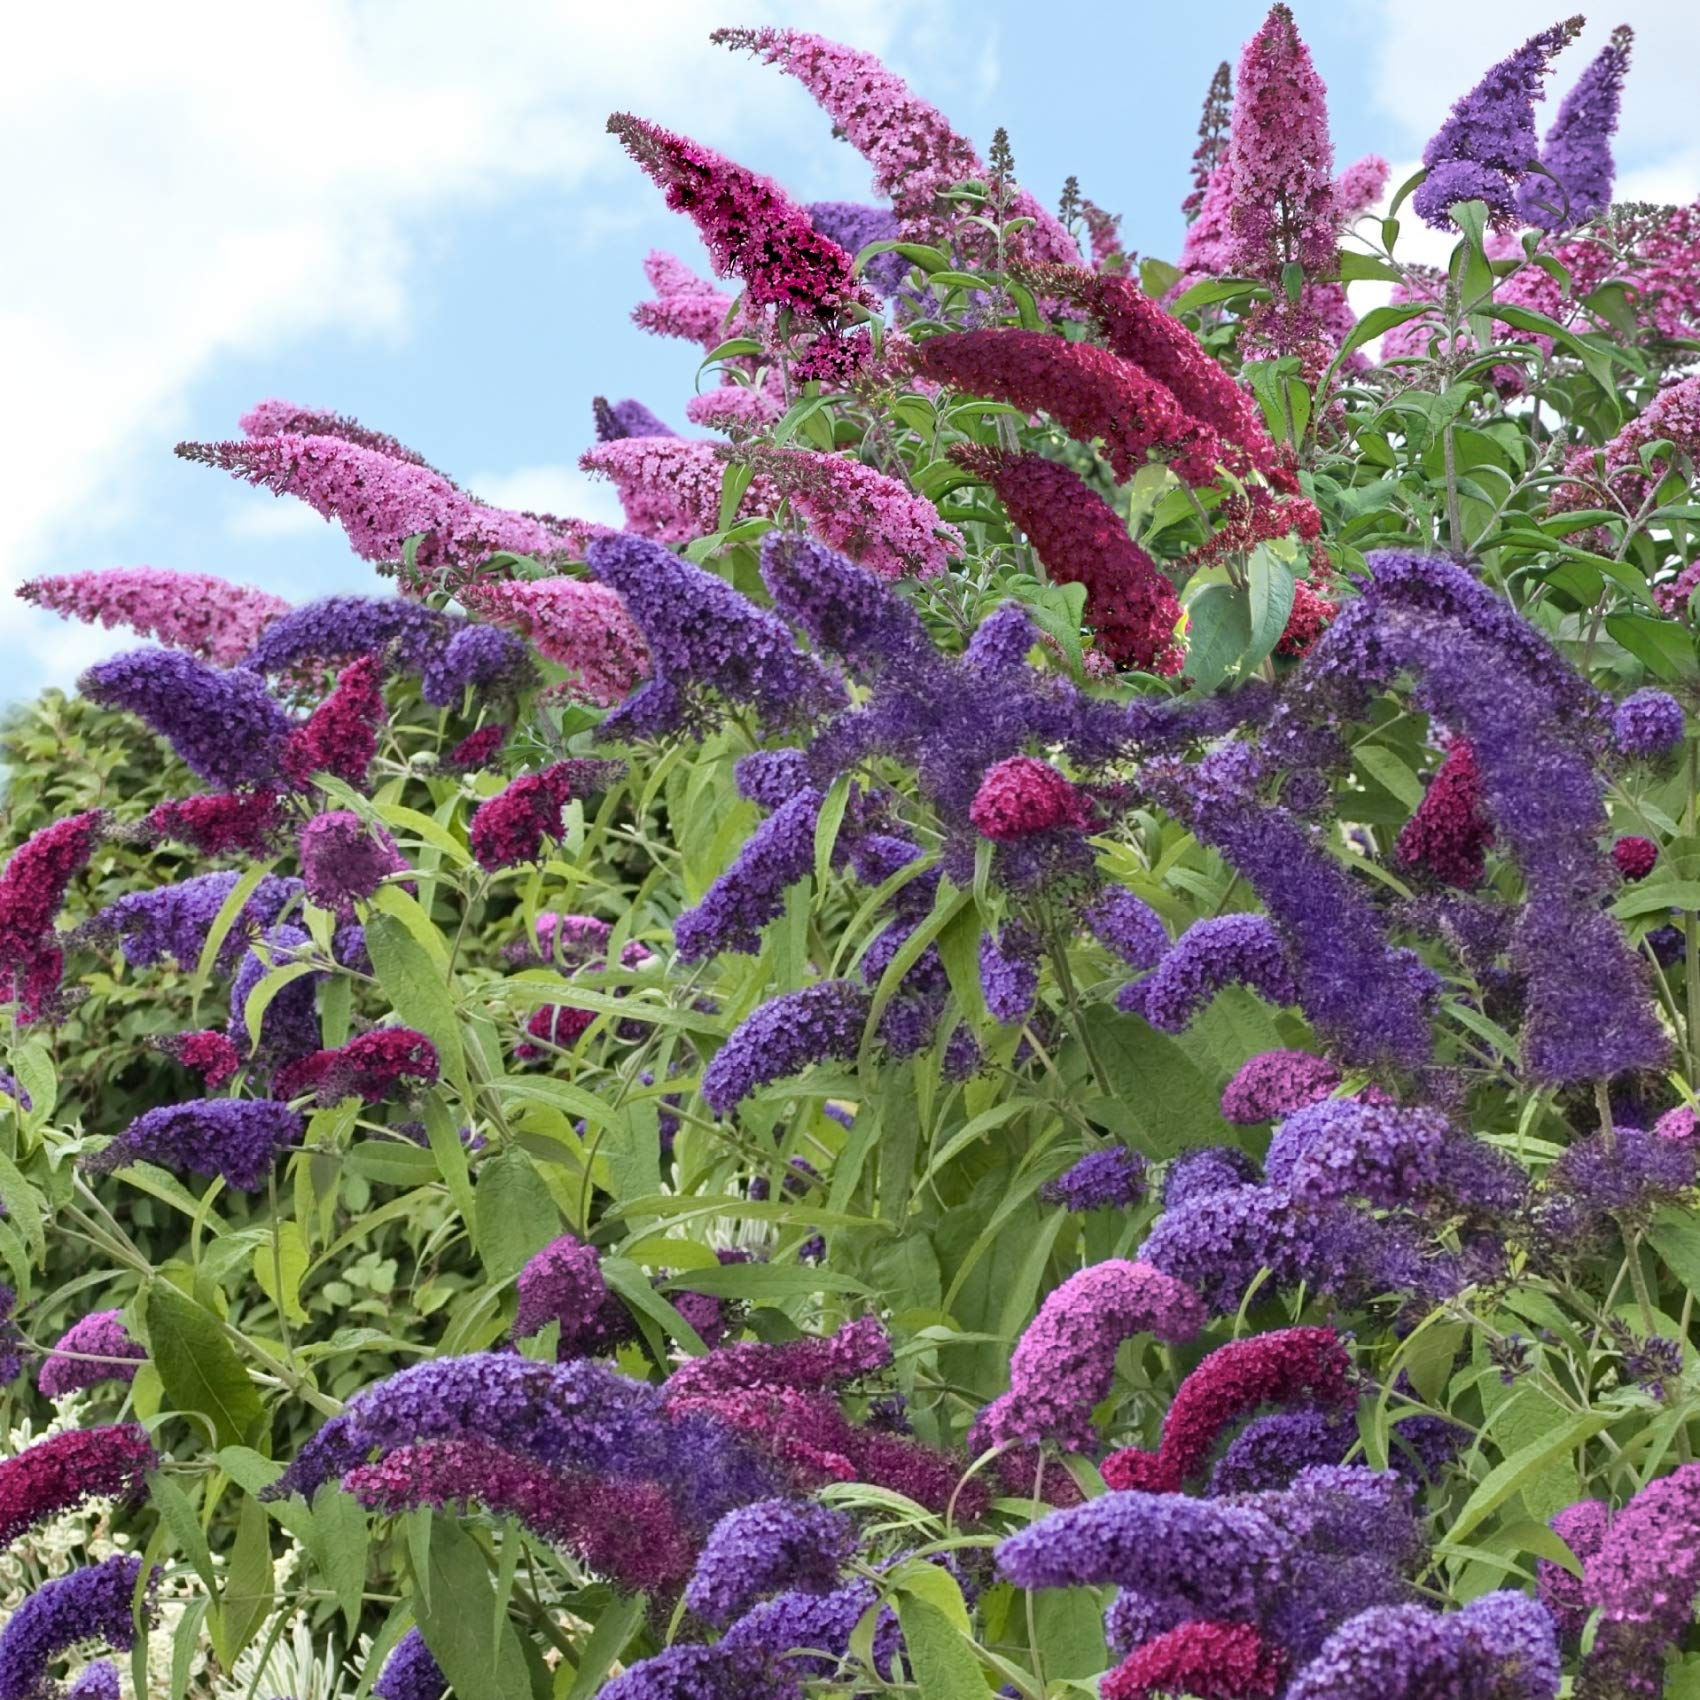 Cottage Hill Buddleia, 3-N-1 Butterfly Bush Collection - 6 Piece Live Plant, Multi-Colored